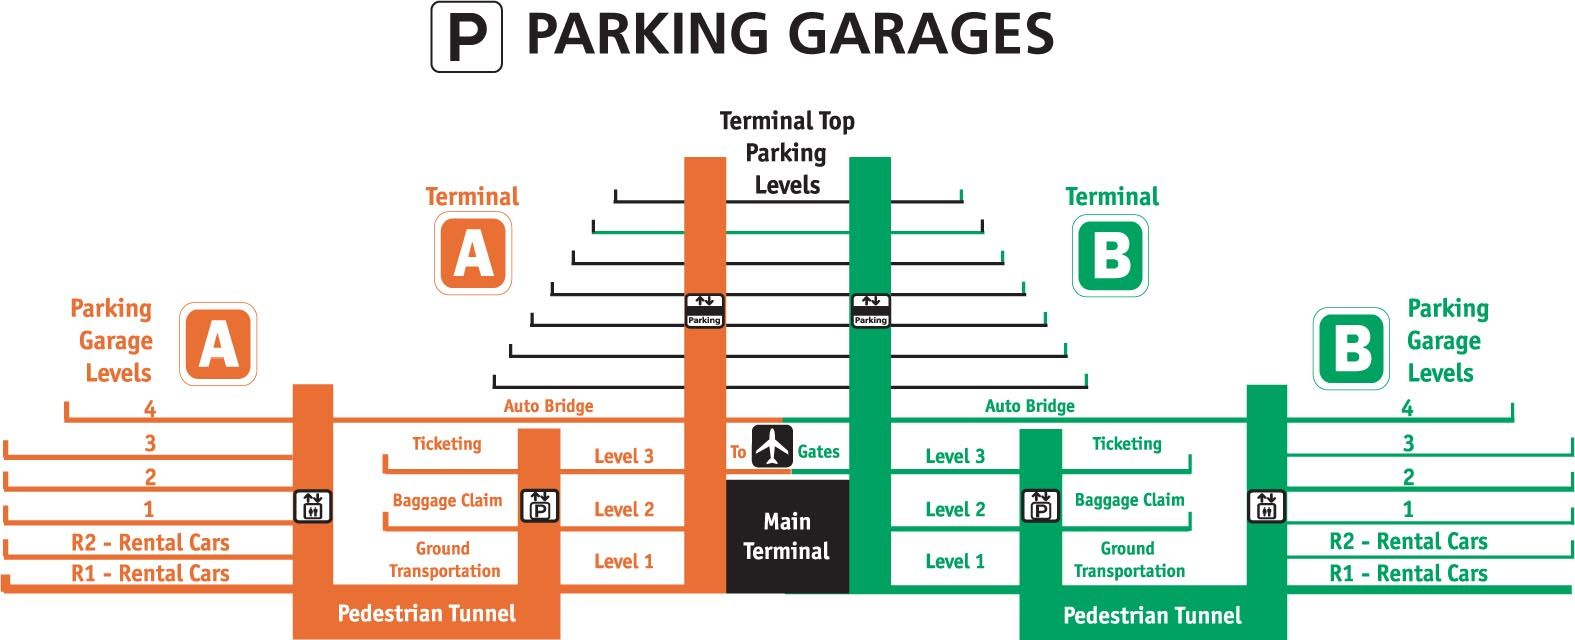 Parking Guide for the Orlando International Airport